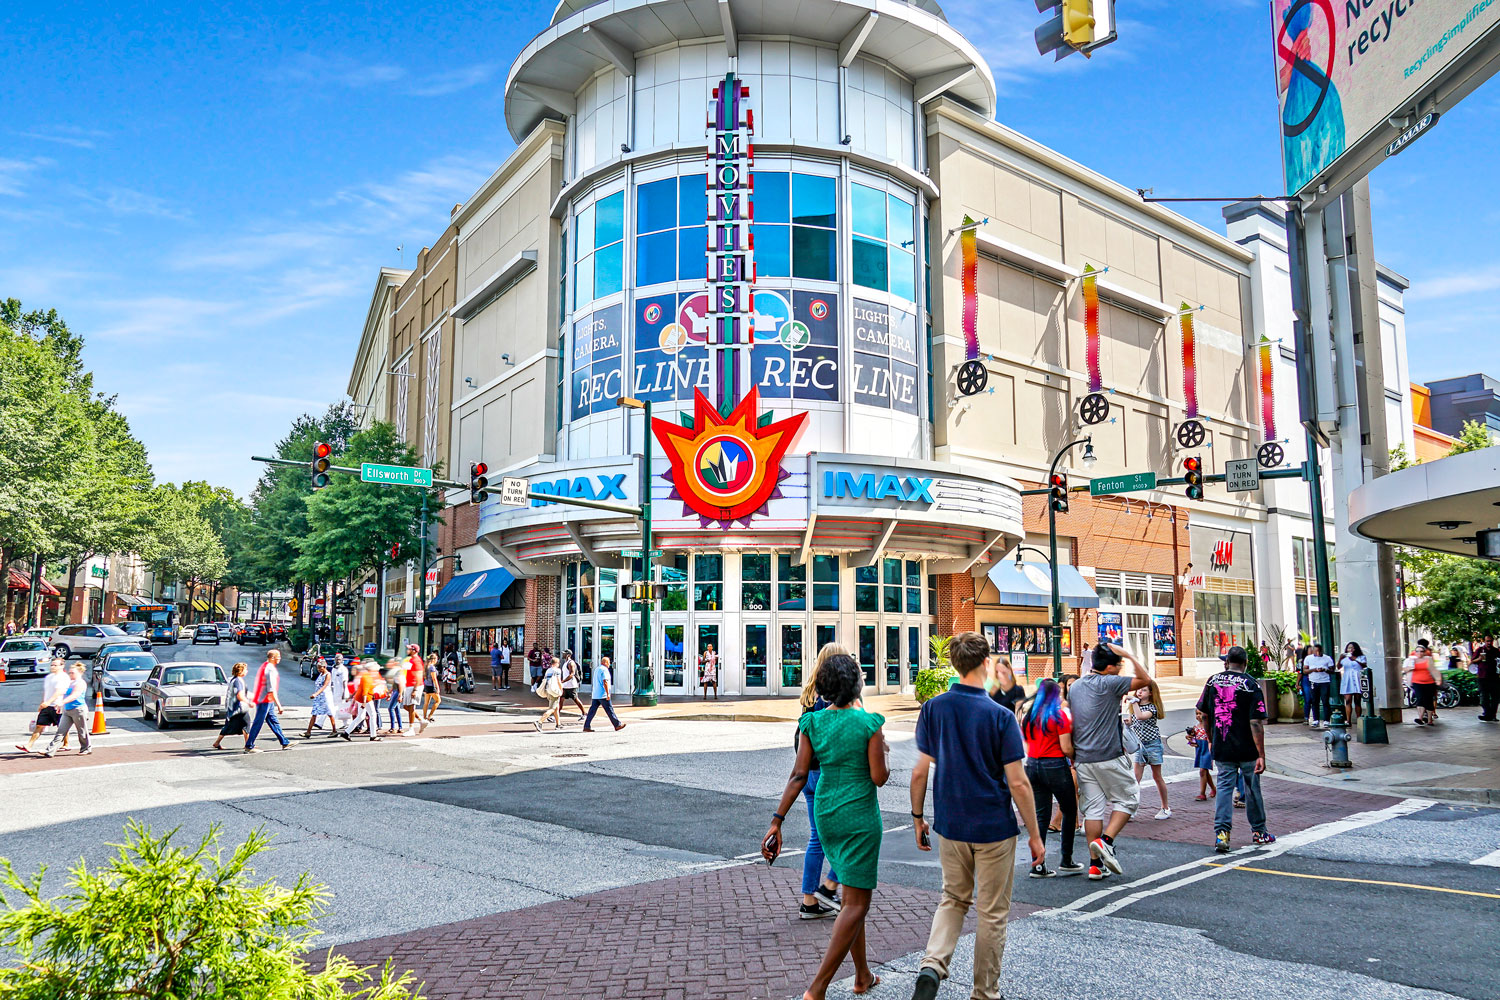 8 minutes to Regal Majestic & IMAX theater in Downtown Silver Spring, MD